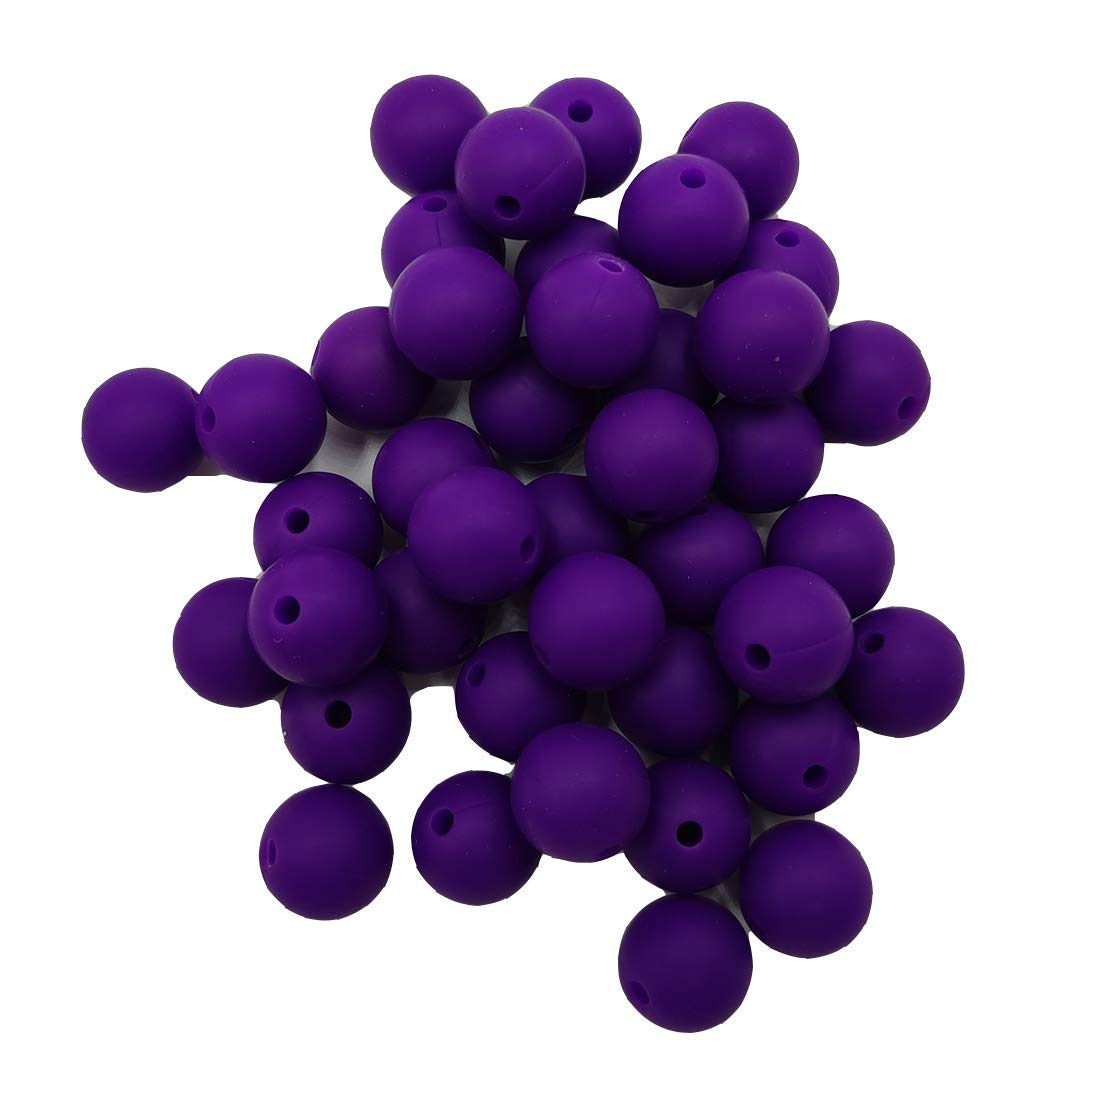 50pcs Classic Purple Color Silicone Round Beads Sensory 15mm Silicone Pearl Bead Bulk Mom Necklace DIY Jewelry Making Decoration